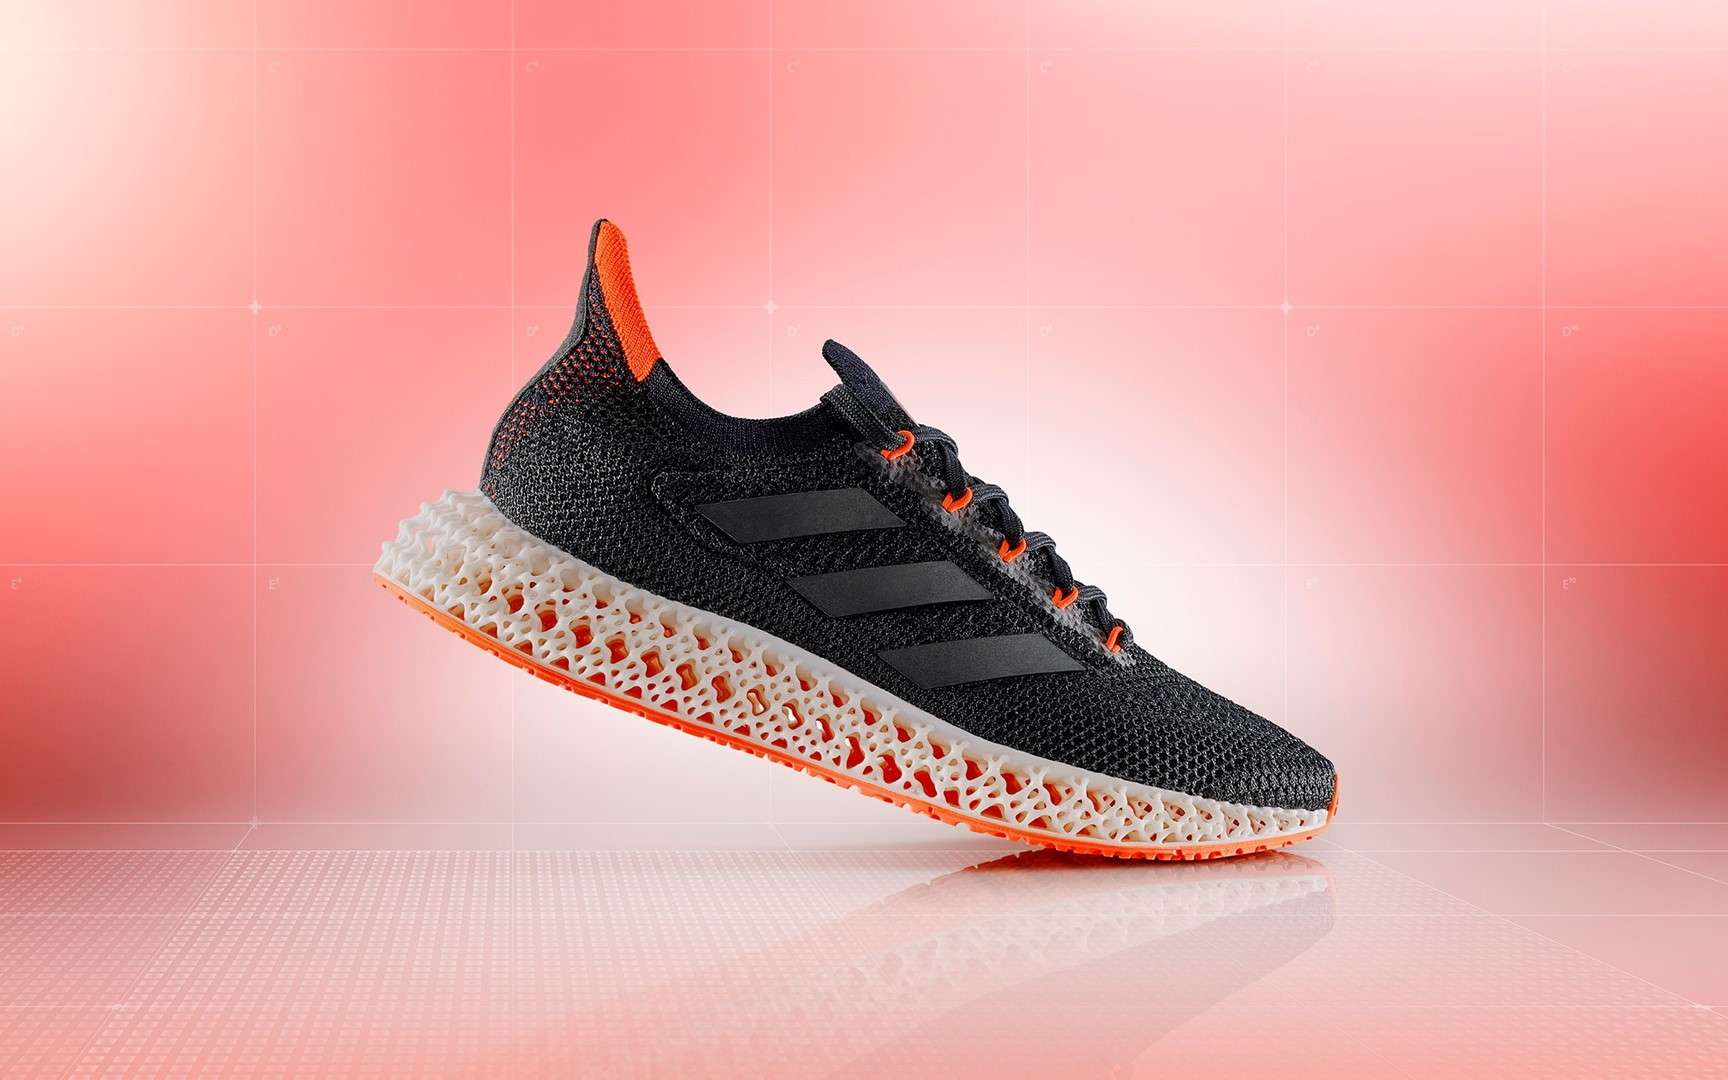 Adidas launches shoe with 3D printed midsole